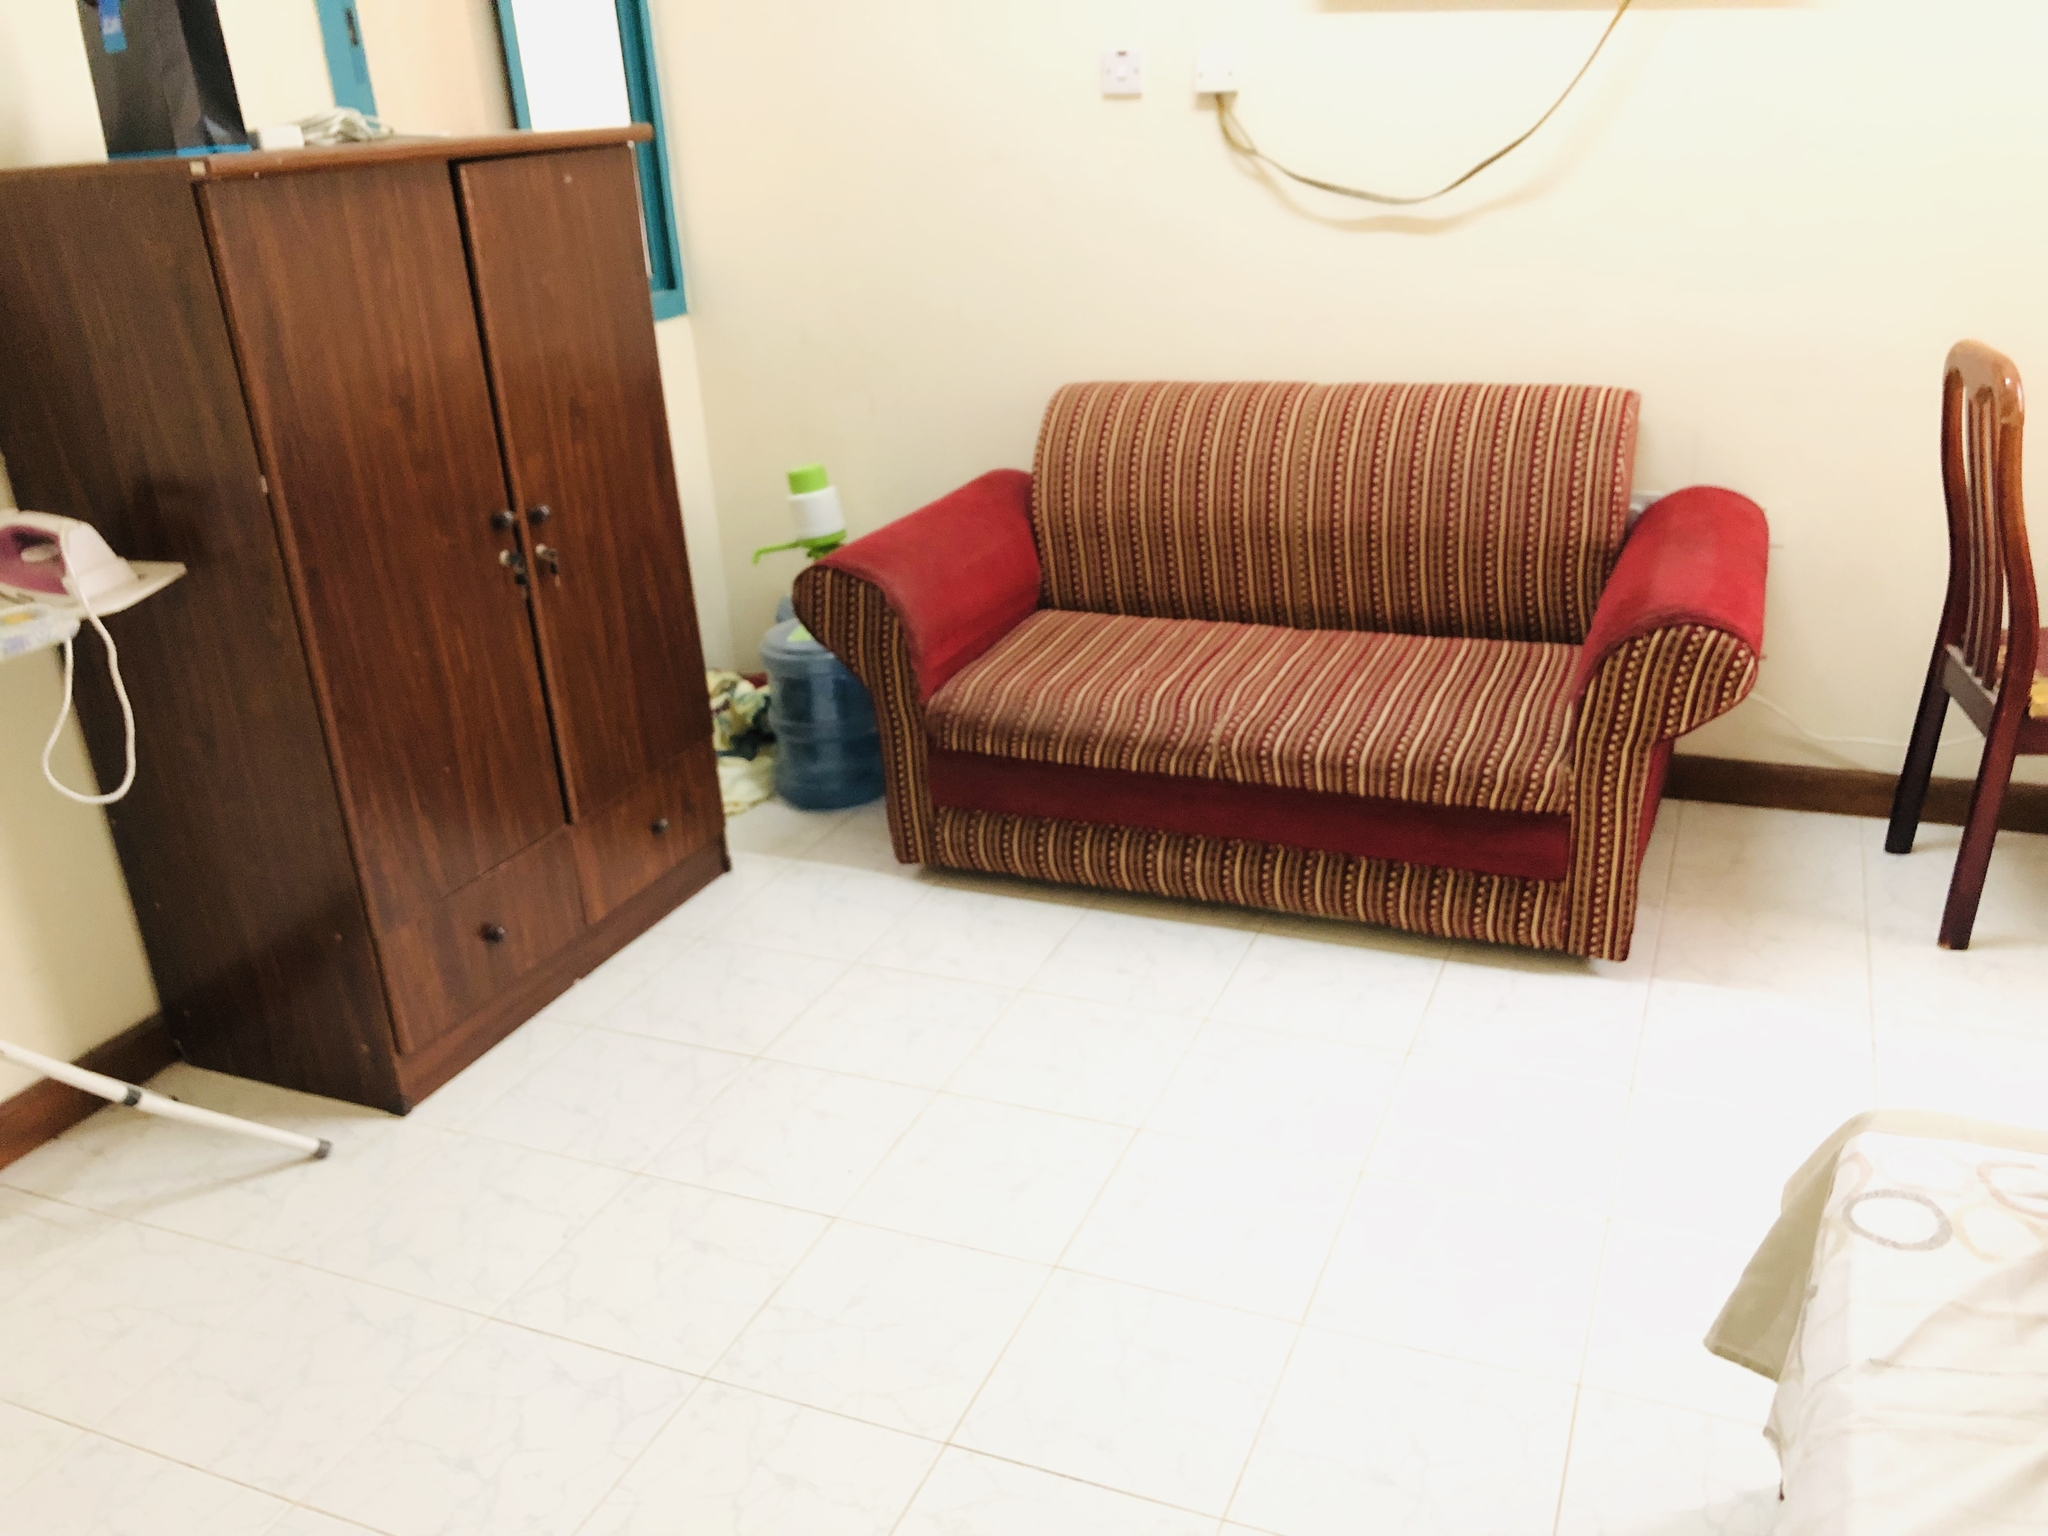 FULLY/NON FURNISHED ROOM RENT FOR BACHELOR AT NAJMA AND OLD AIRPORT